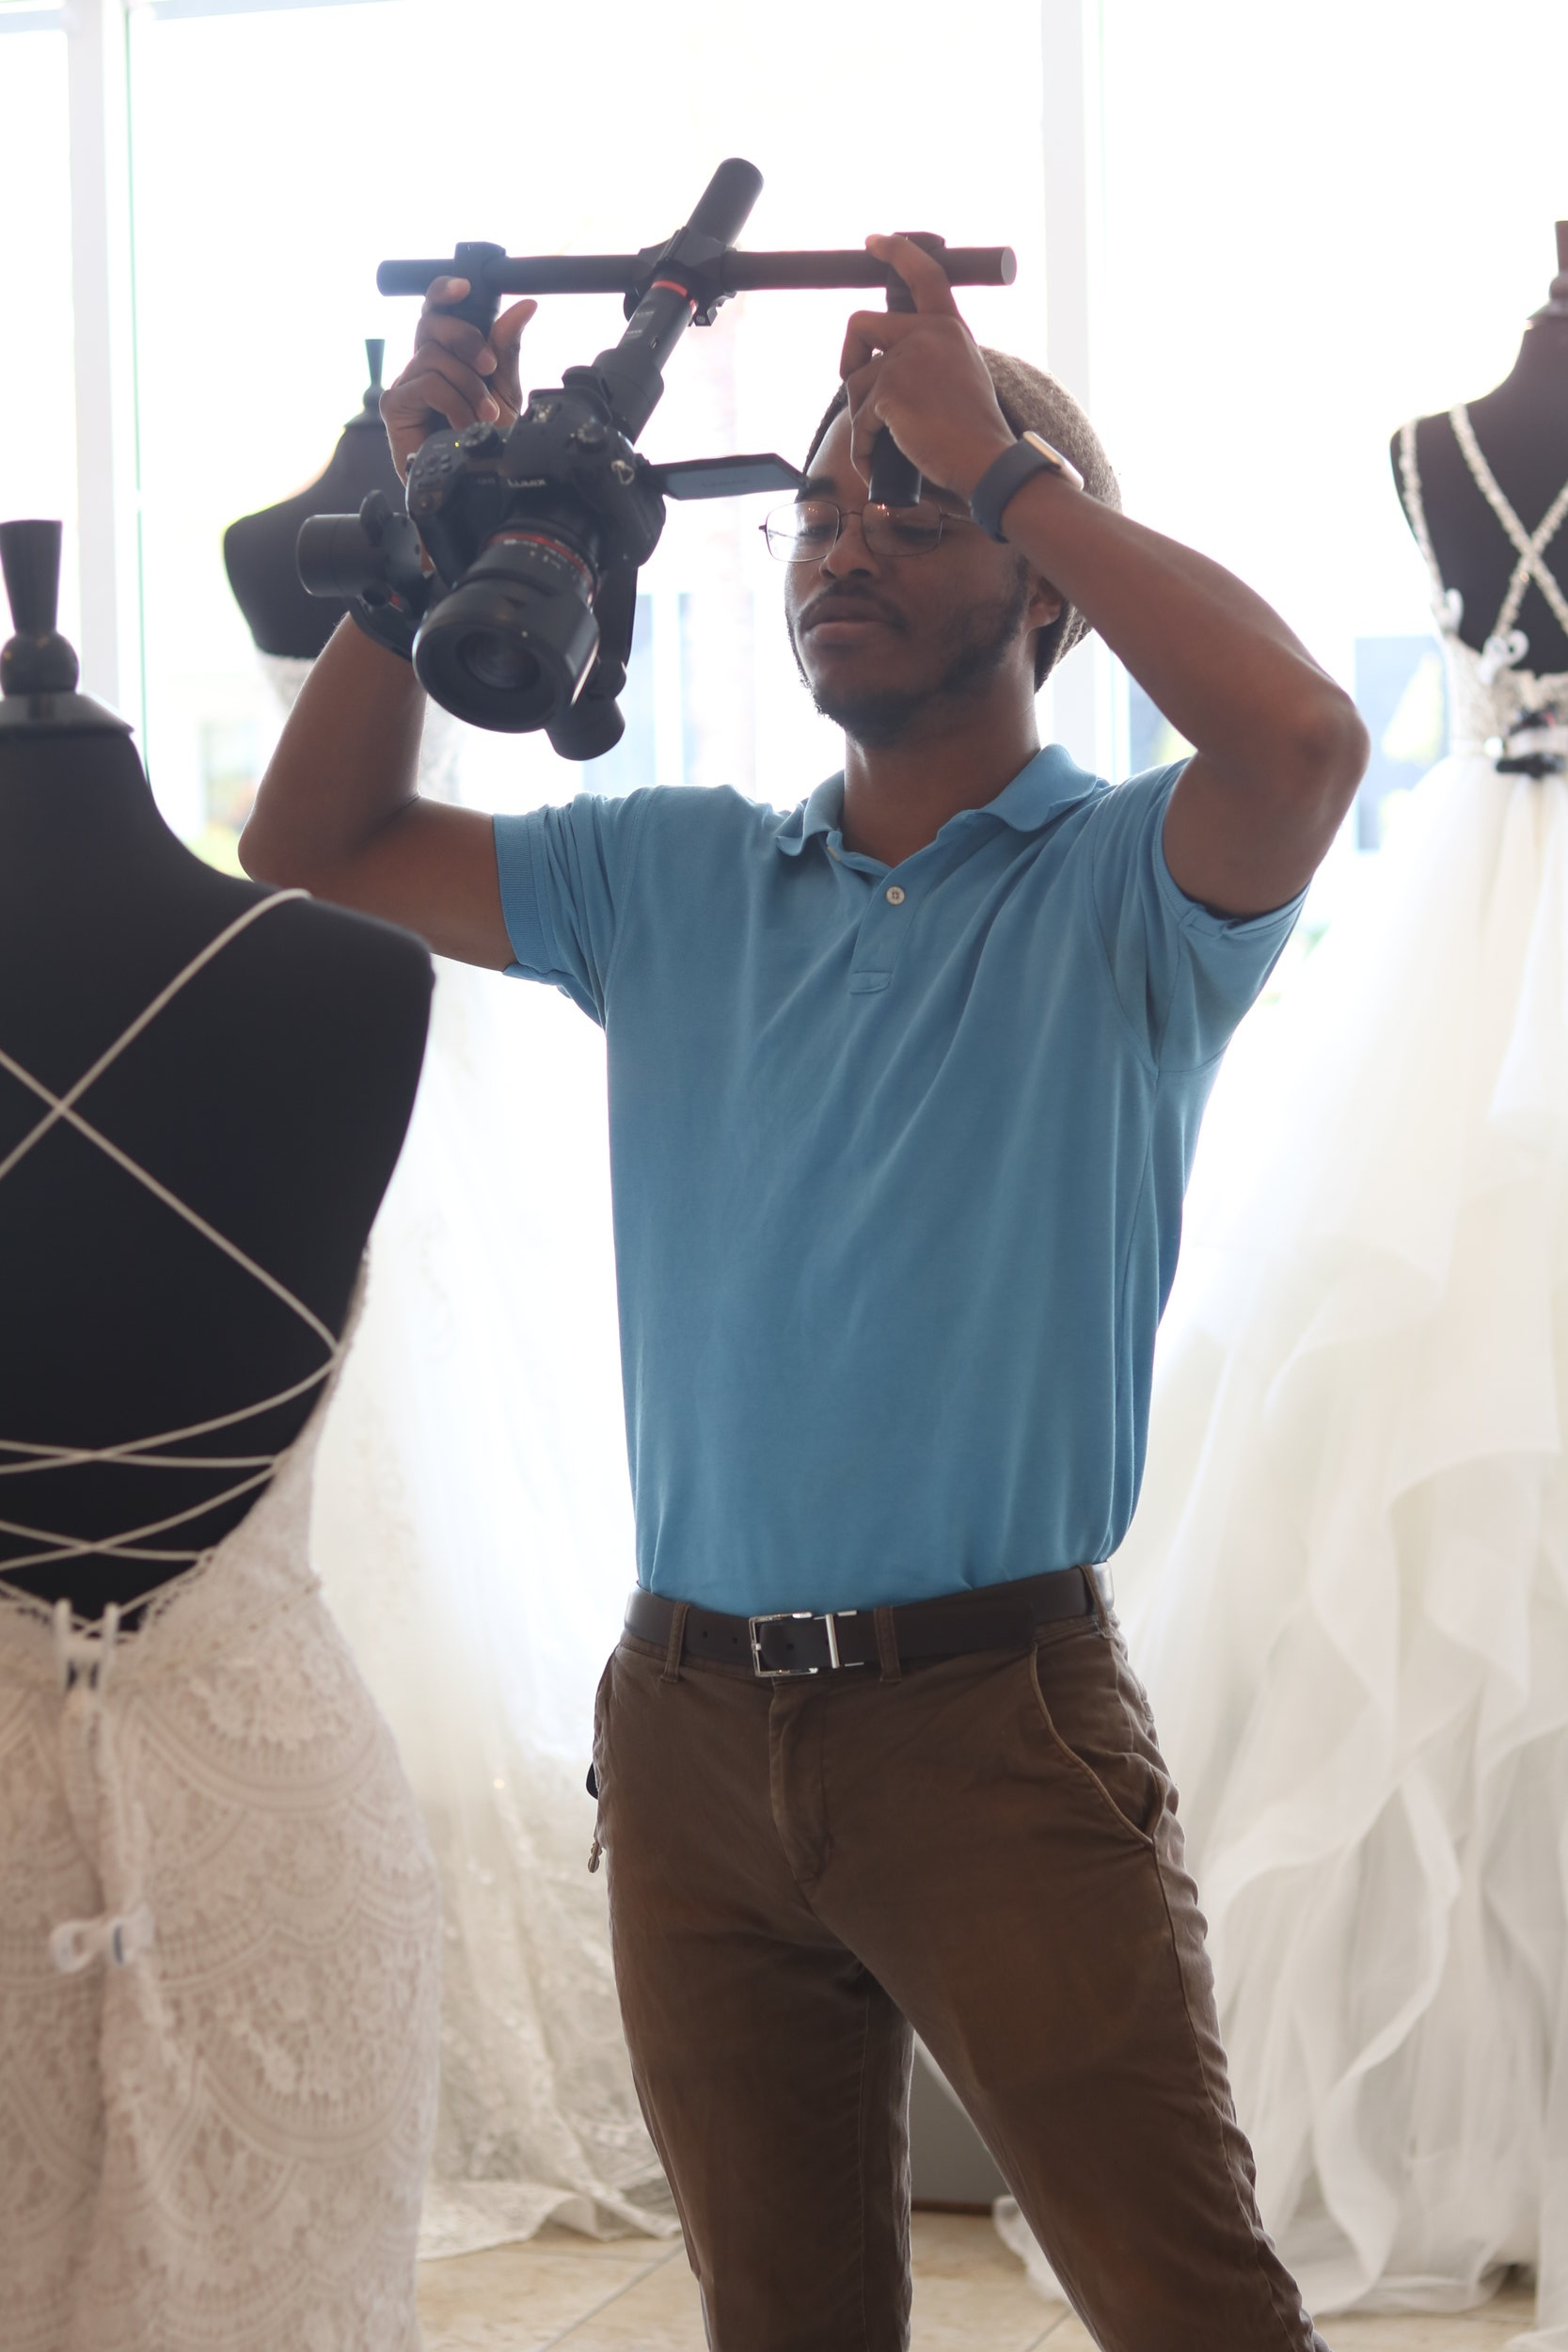 Terrence shooting a bridal shop promotional video. Photo by Josue Jeune.